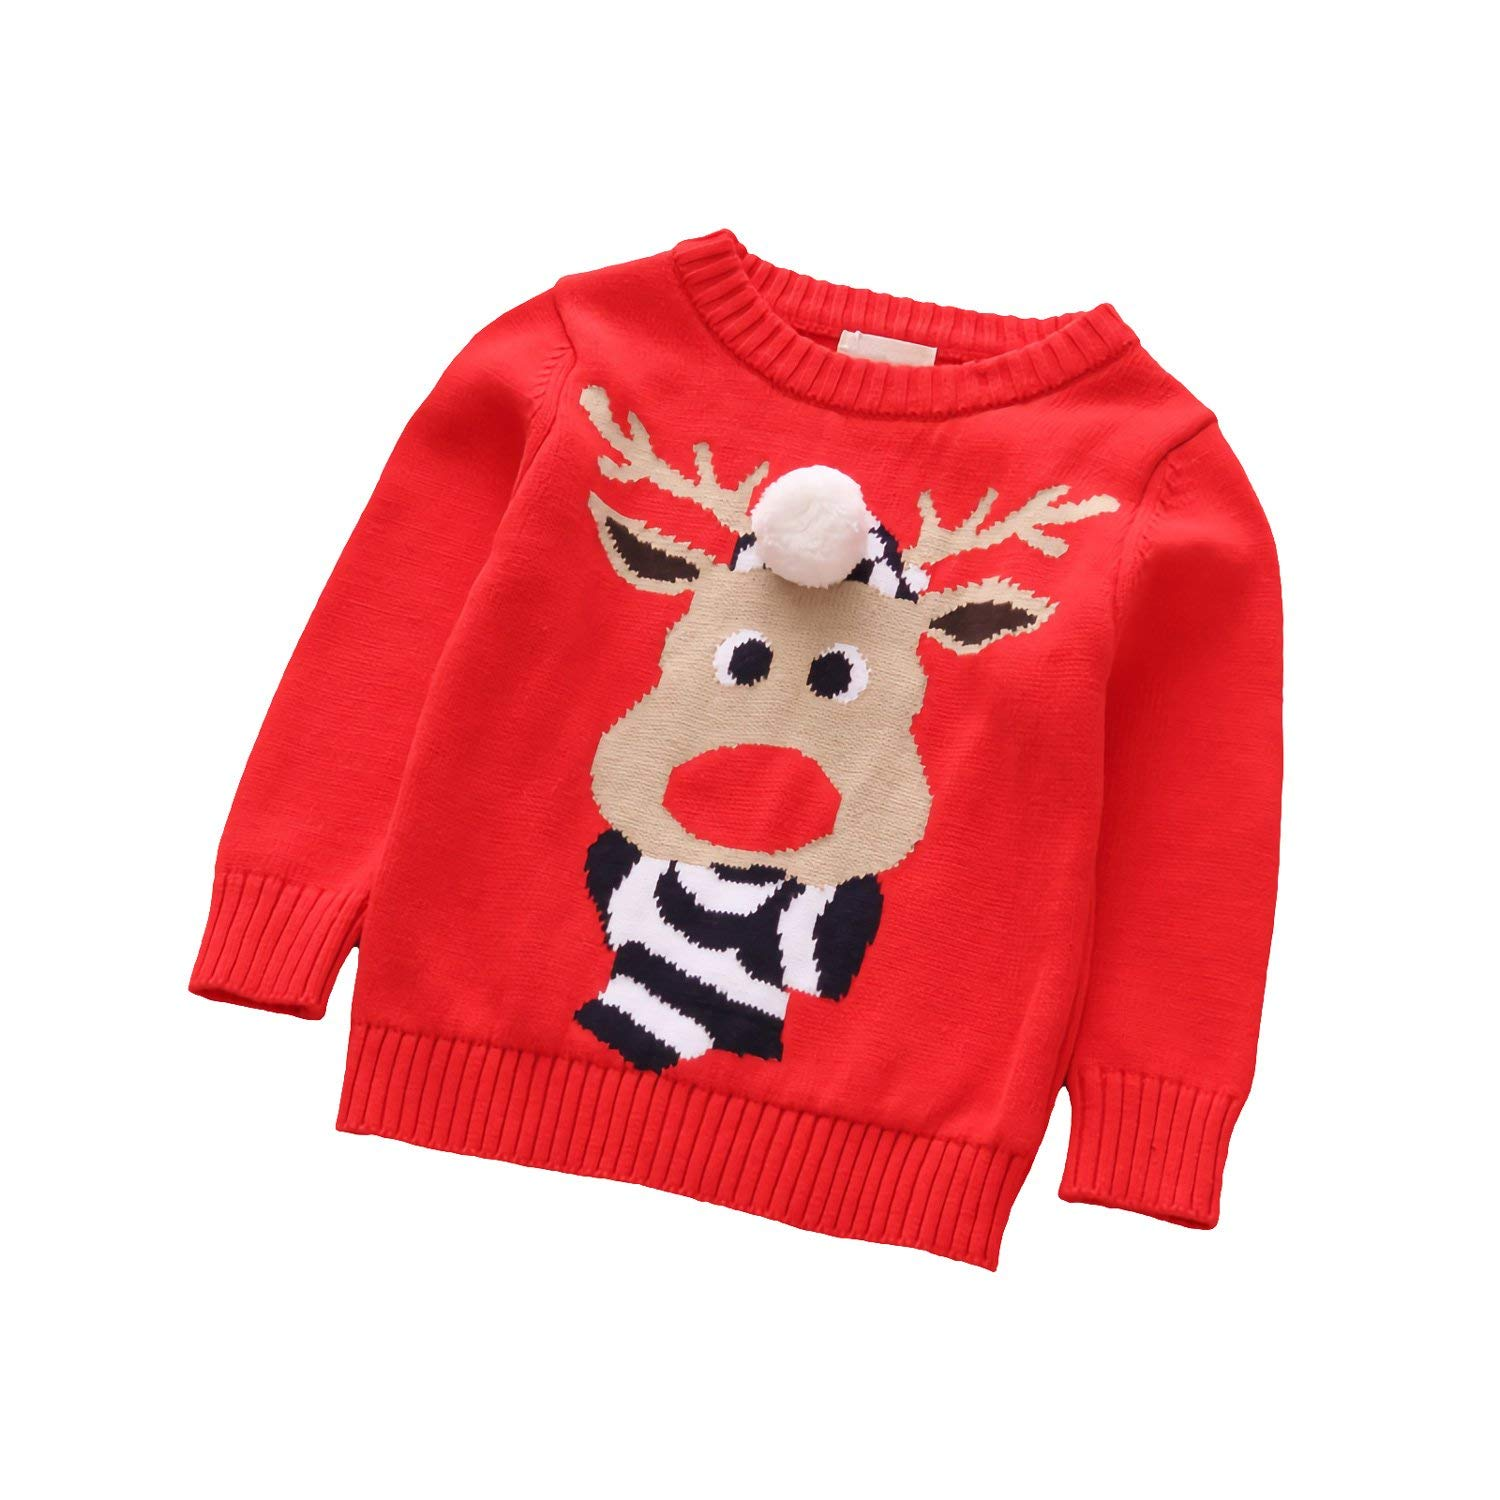 Velius Girl's Long Sleeve Knit Elk Christmas Sweater Tops 03